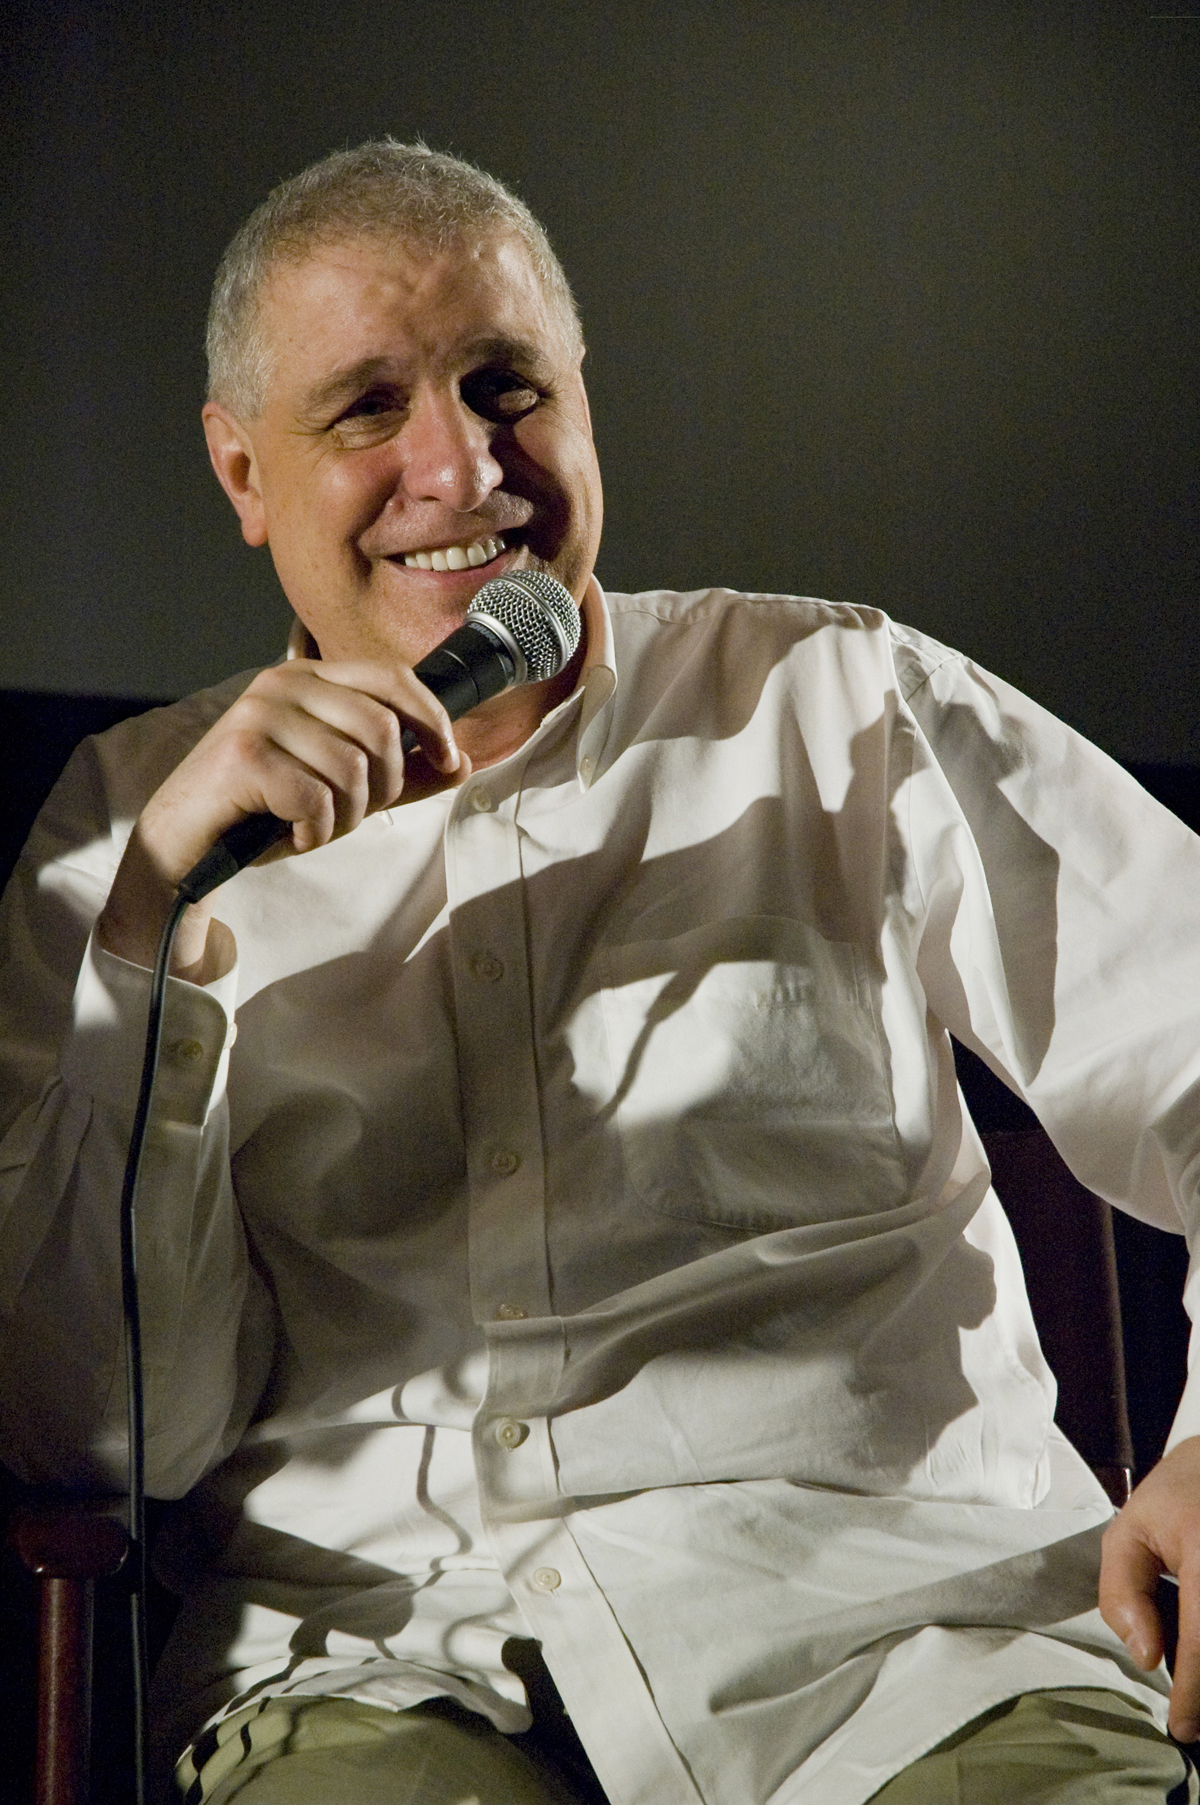 Errol Morris. Photo credit: Bridget Laudien/Wikimedia Commons [Licensed under CC BY 3.0]